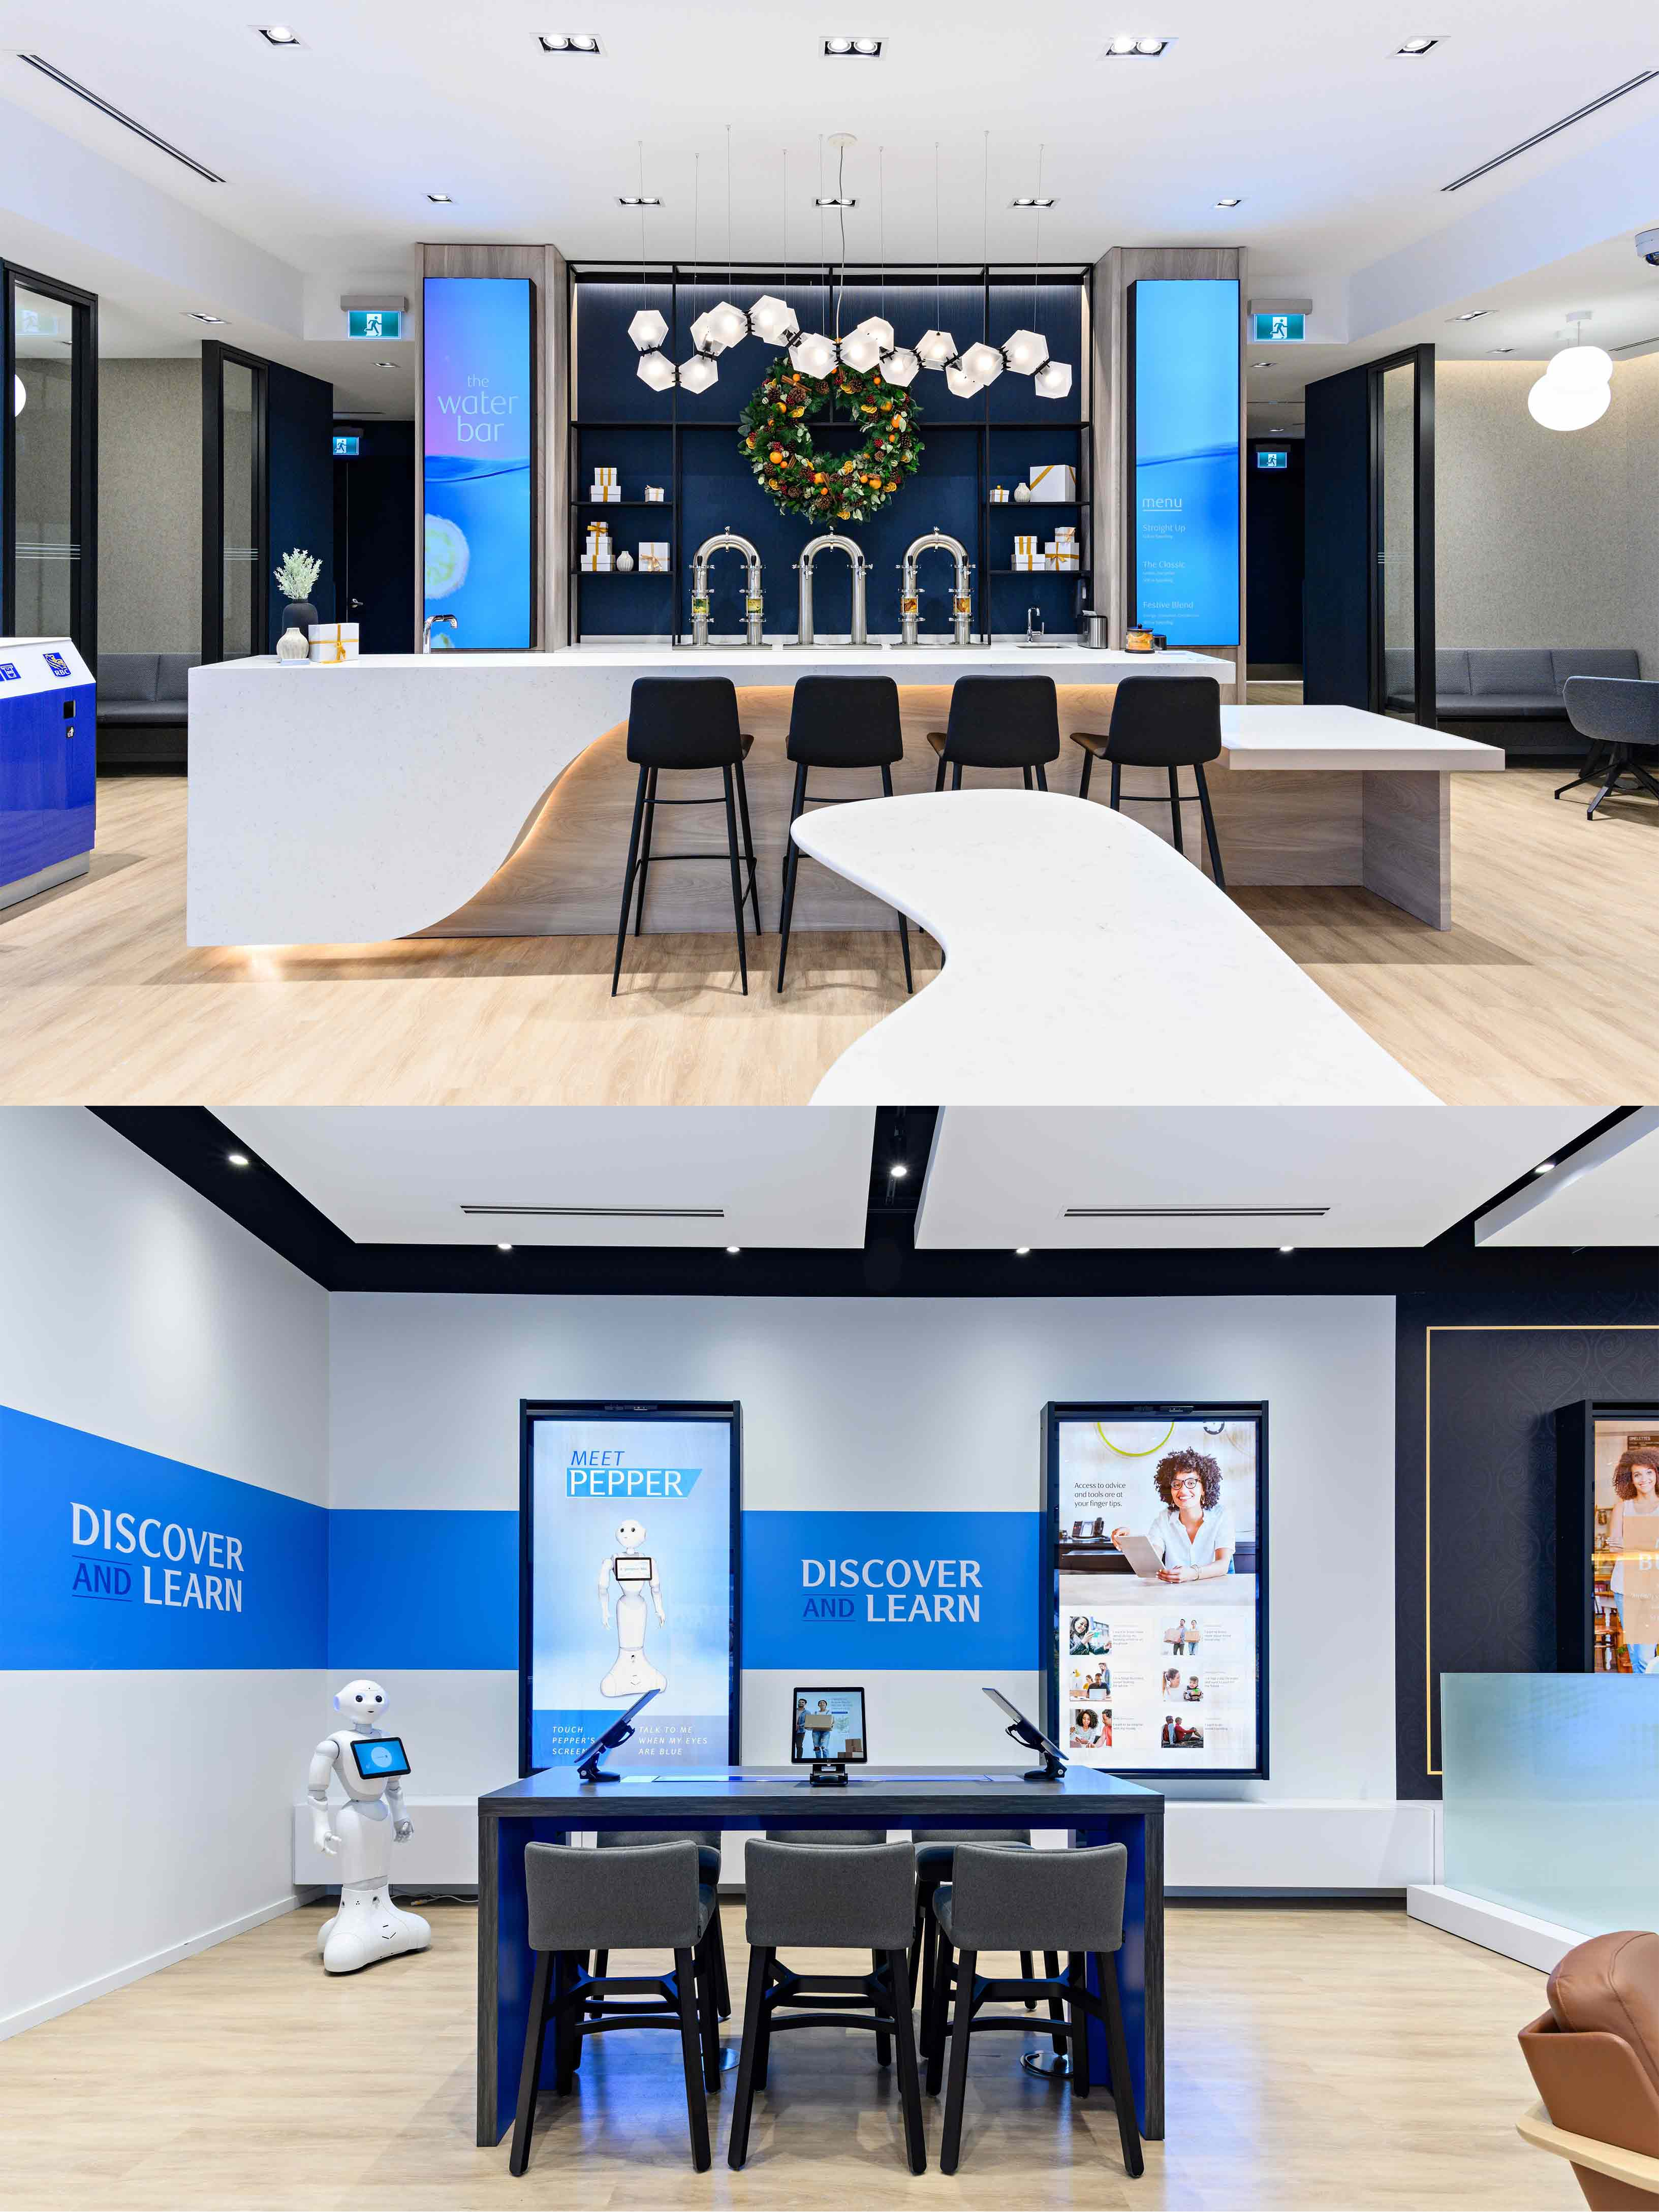 RBC's eXperience Store image